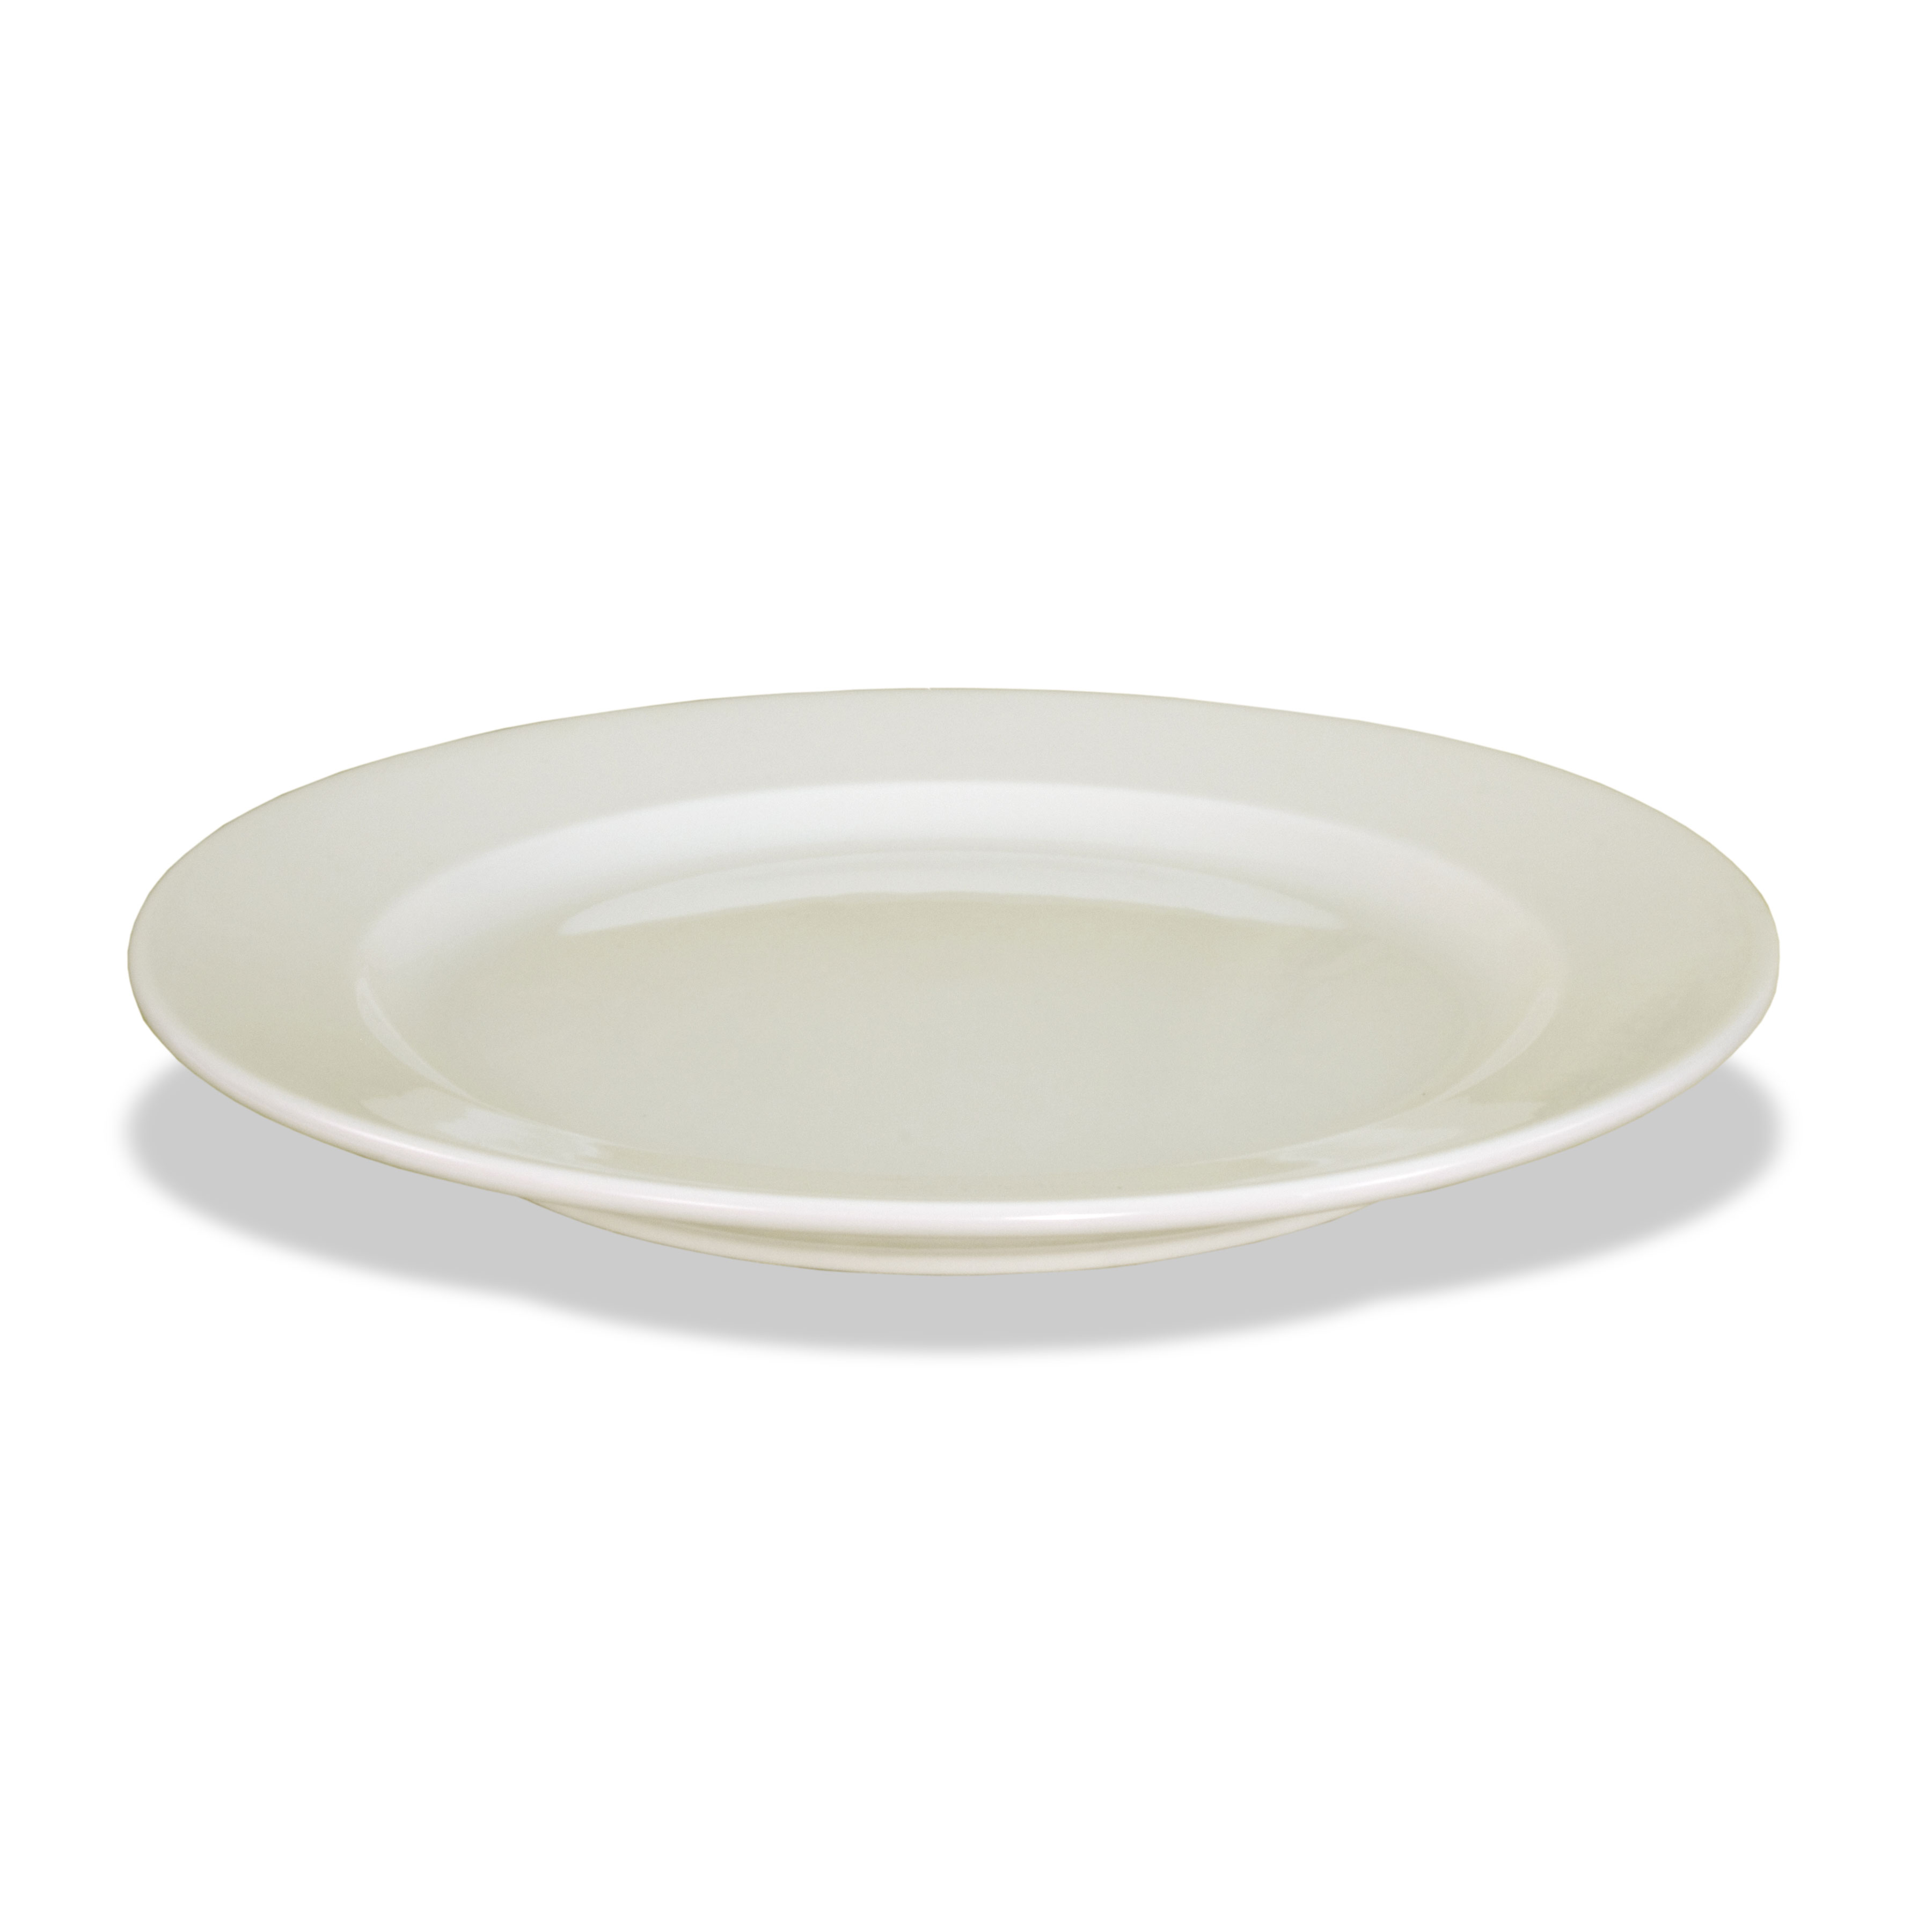 Crestware BEL46 plate, china